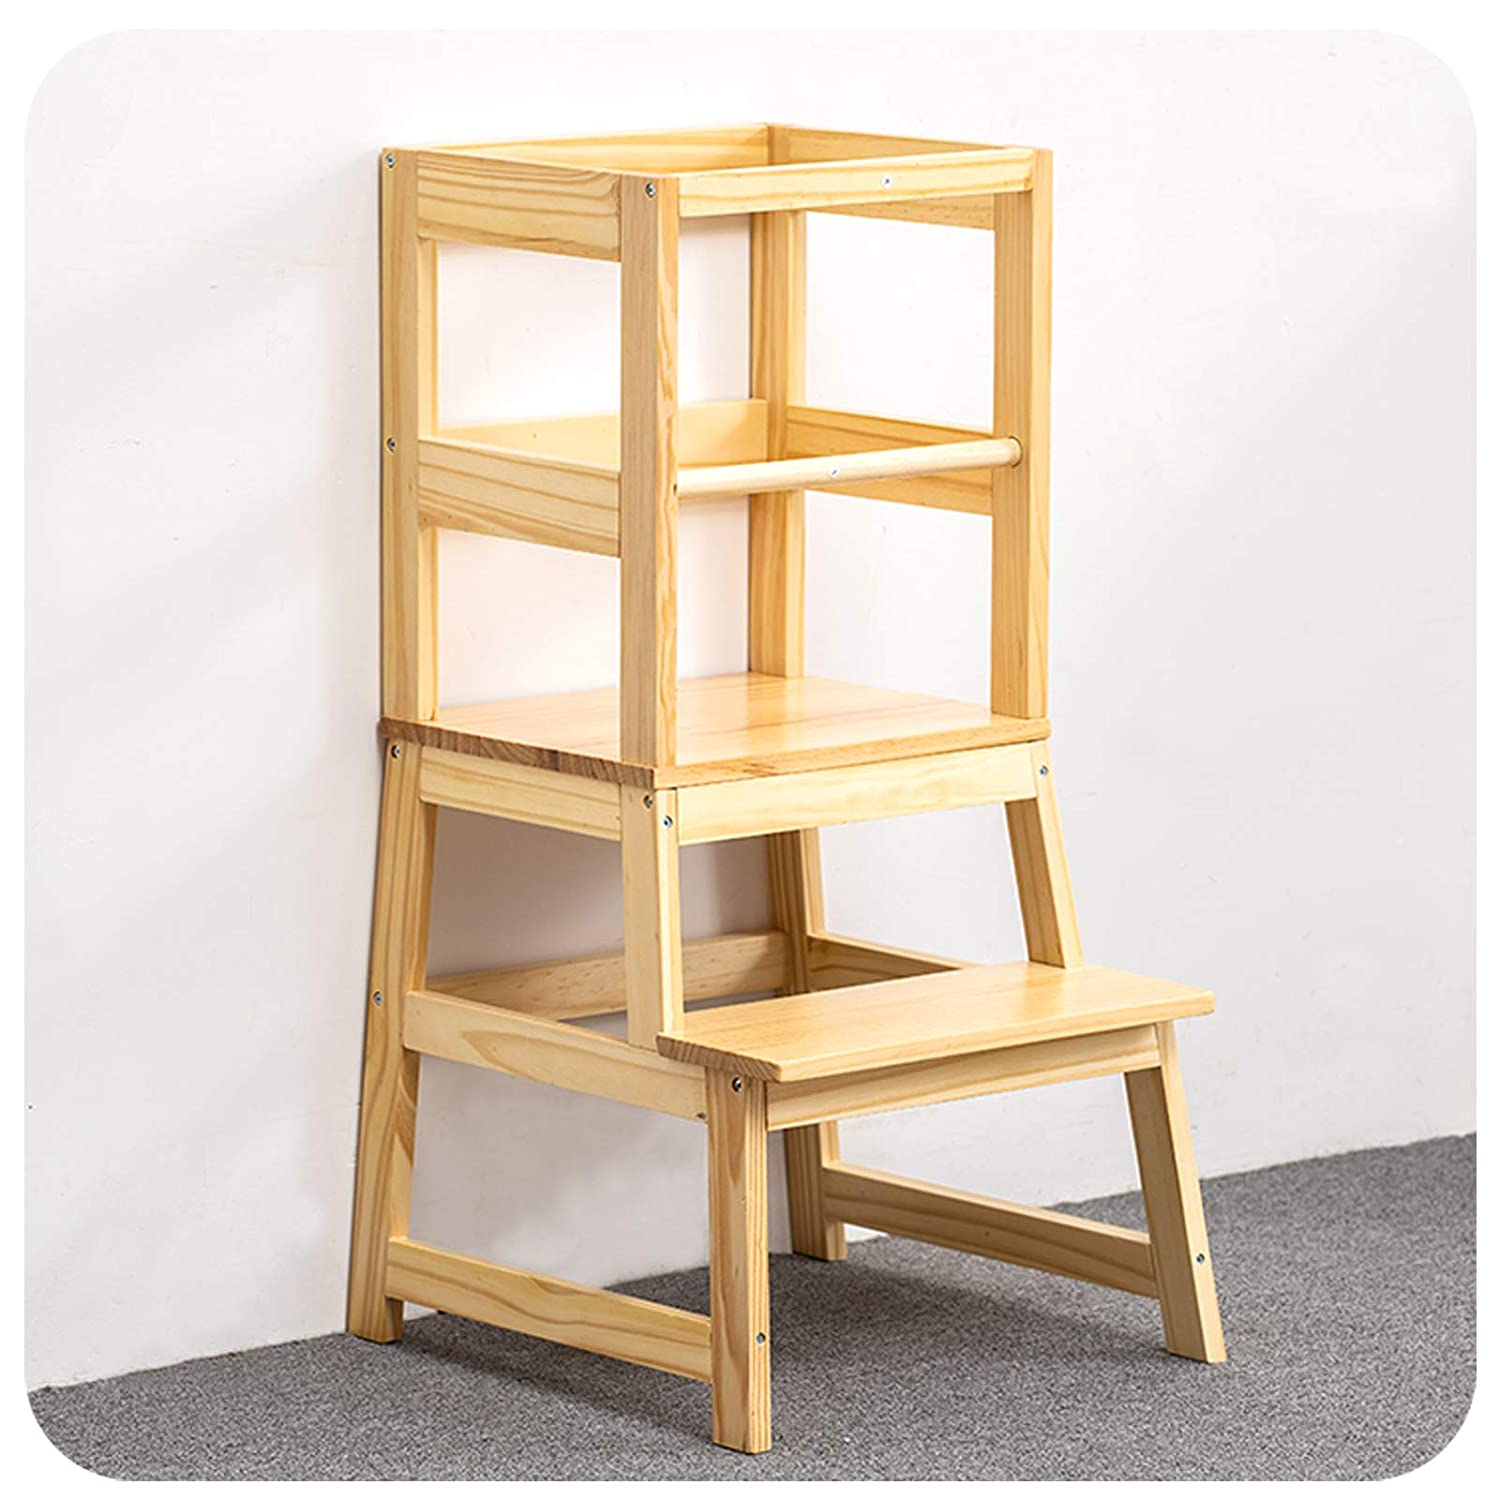 WOOD CITY Kitchen Helper Stool for Kids with Non-Slip Mat, Toddler Stool Tower, Wooden Toddler Stepping Stool for Counter & Bathroom Sink, Natural